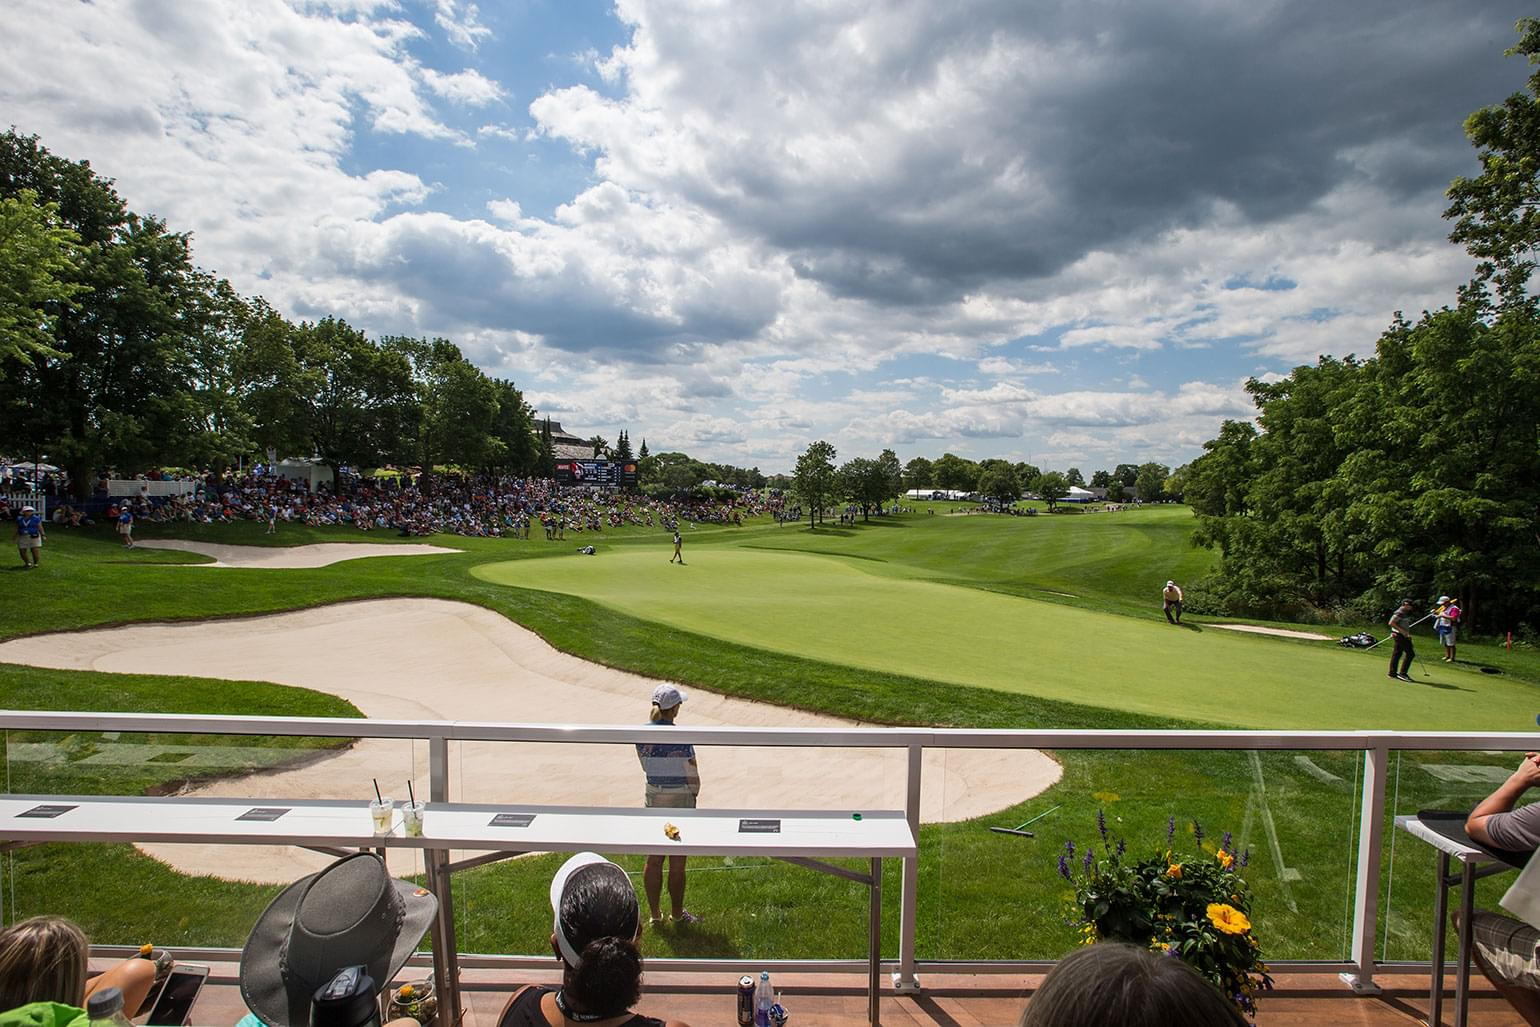 Behind the scene image from the stands of the RBC Canadian Open.